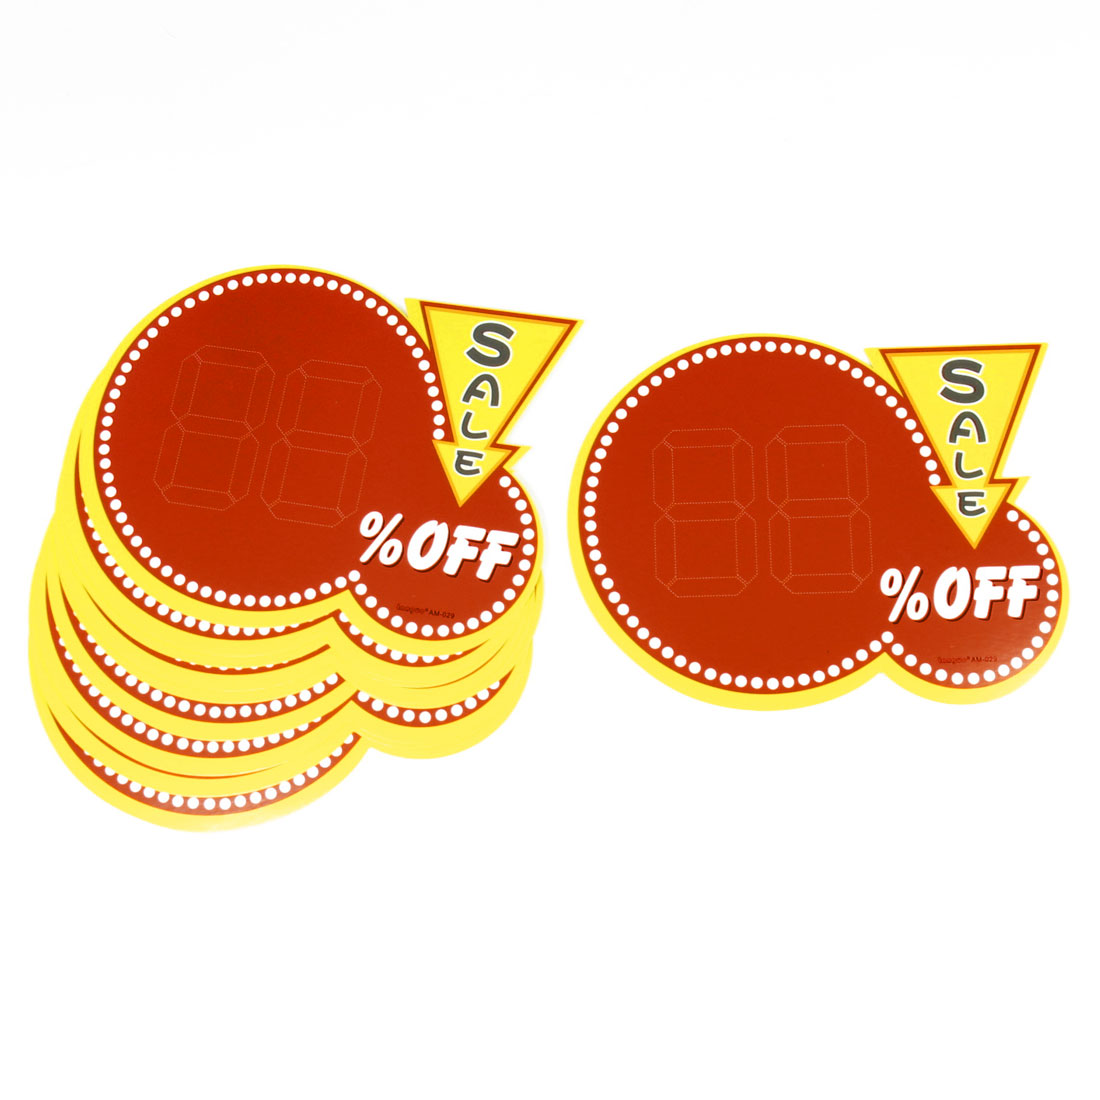 Shops 0.88 Off Sale Pattern Product Promotion Paper Price Tags Red Yellow 10 Pcs